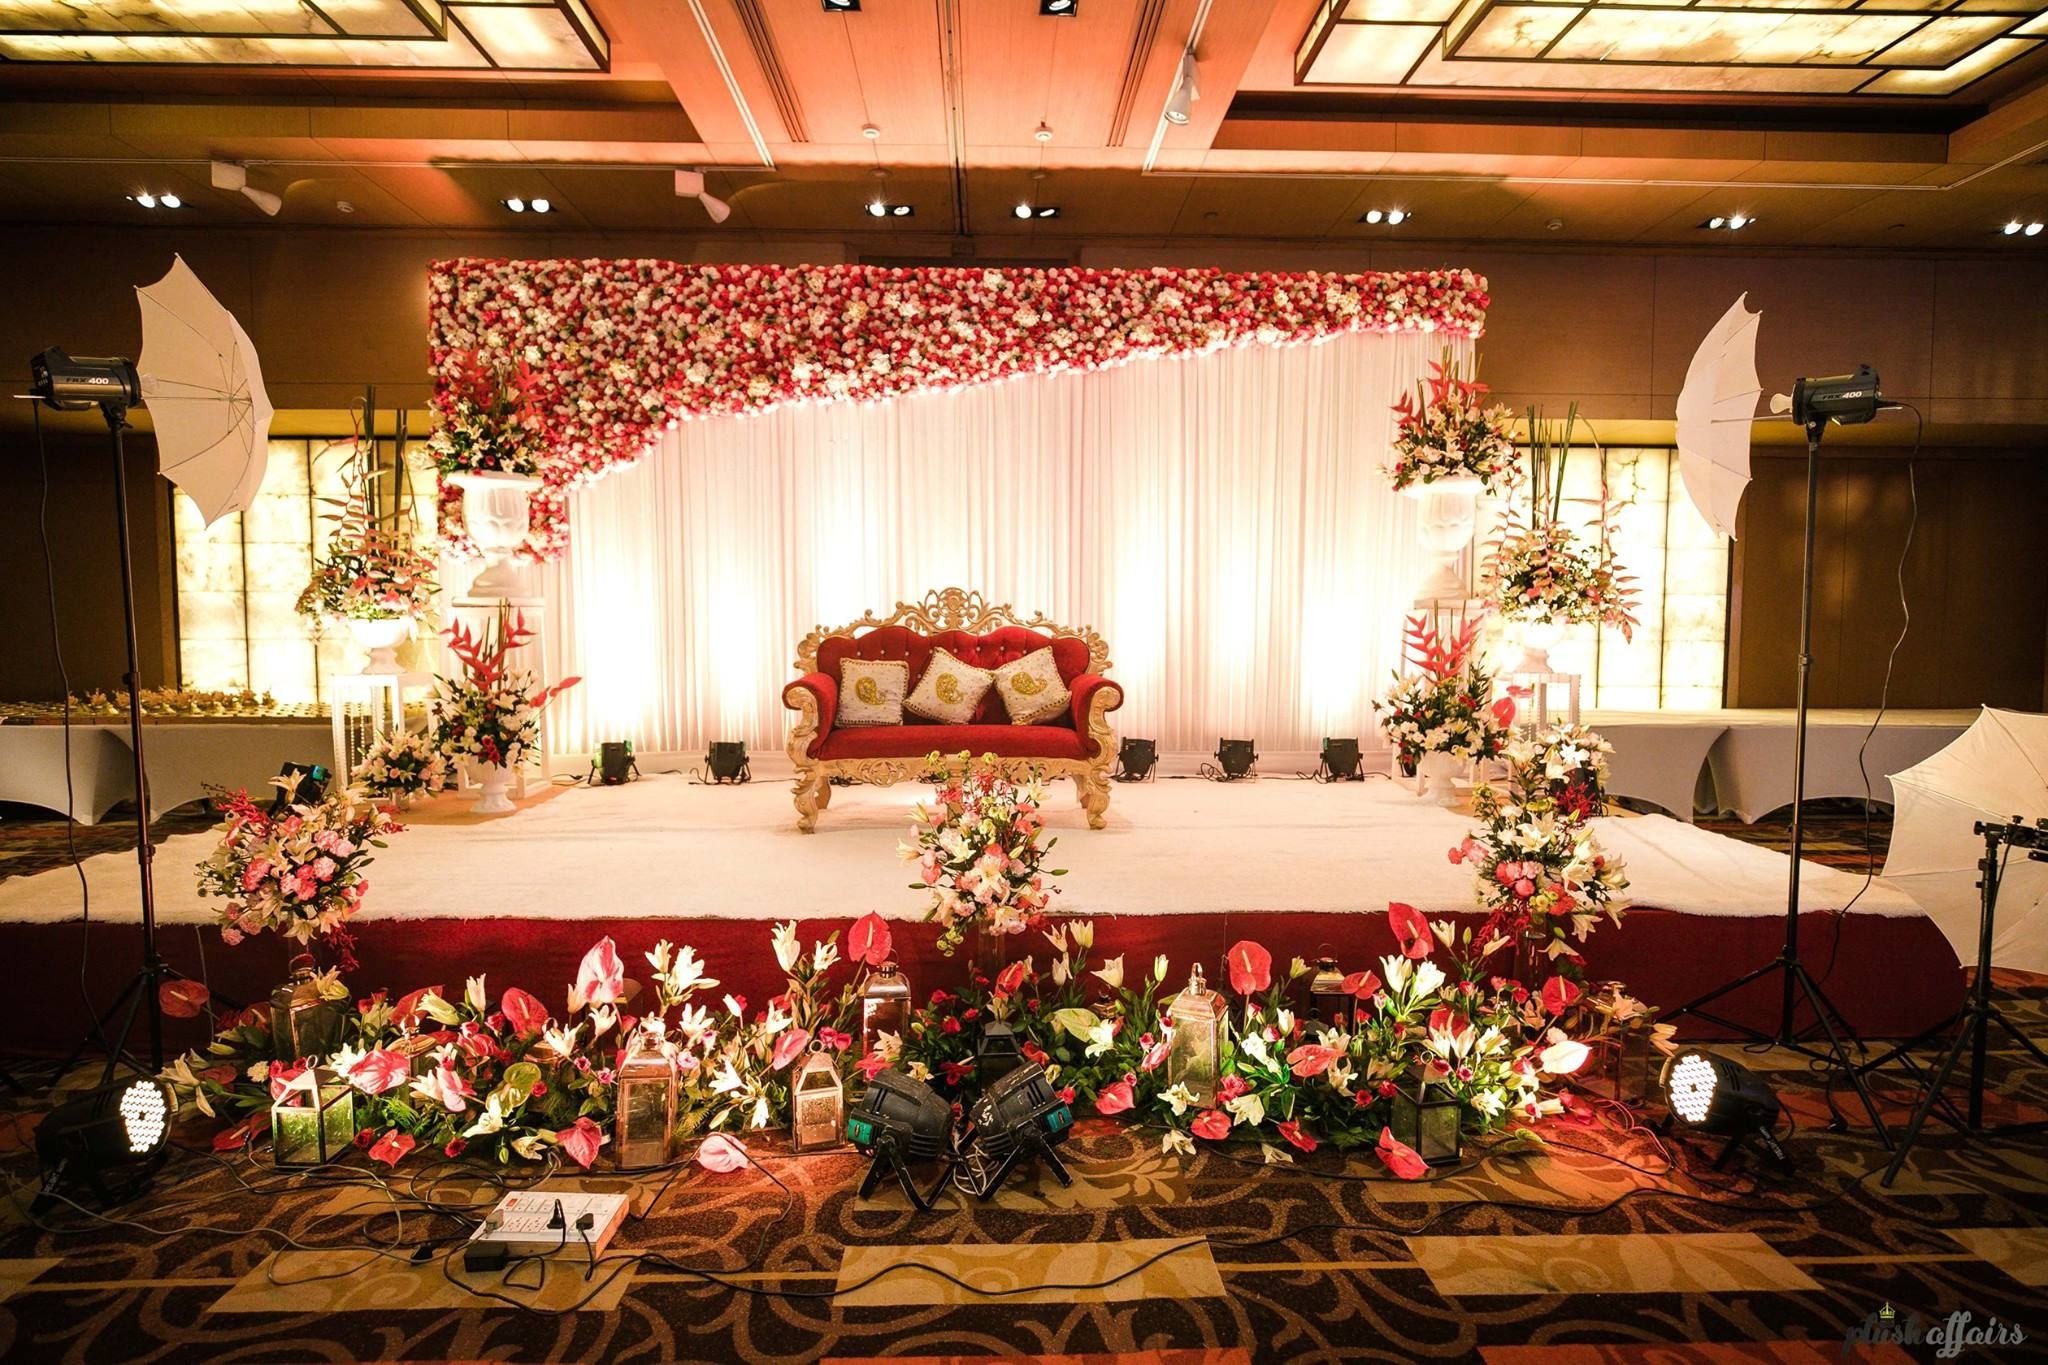 Get Inspired From Thousands Of Photos Of Latest Wedding Decor